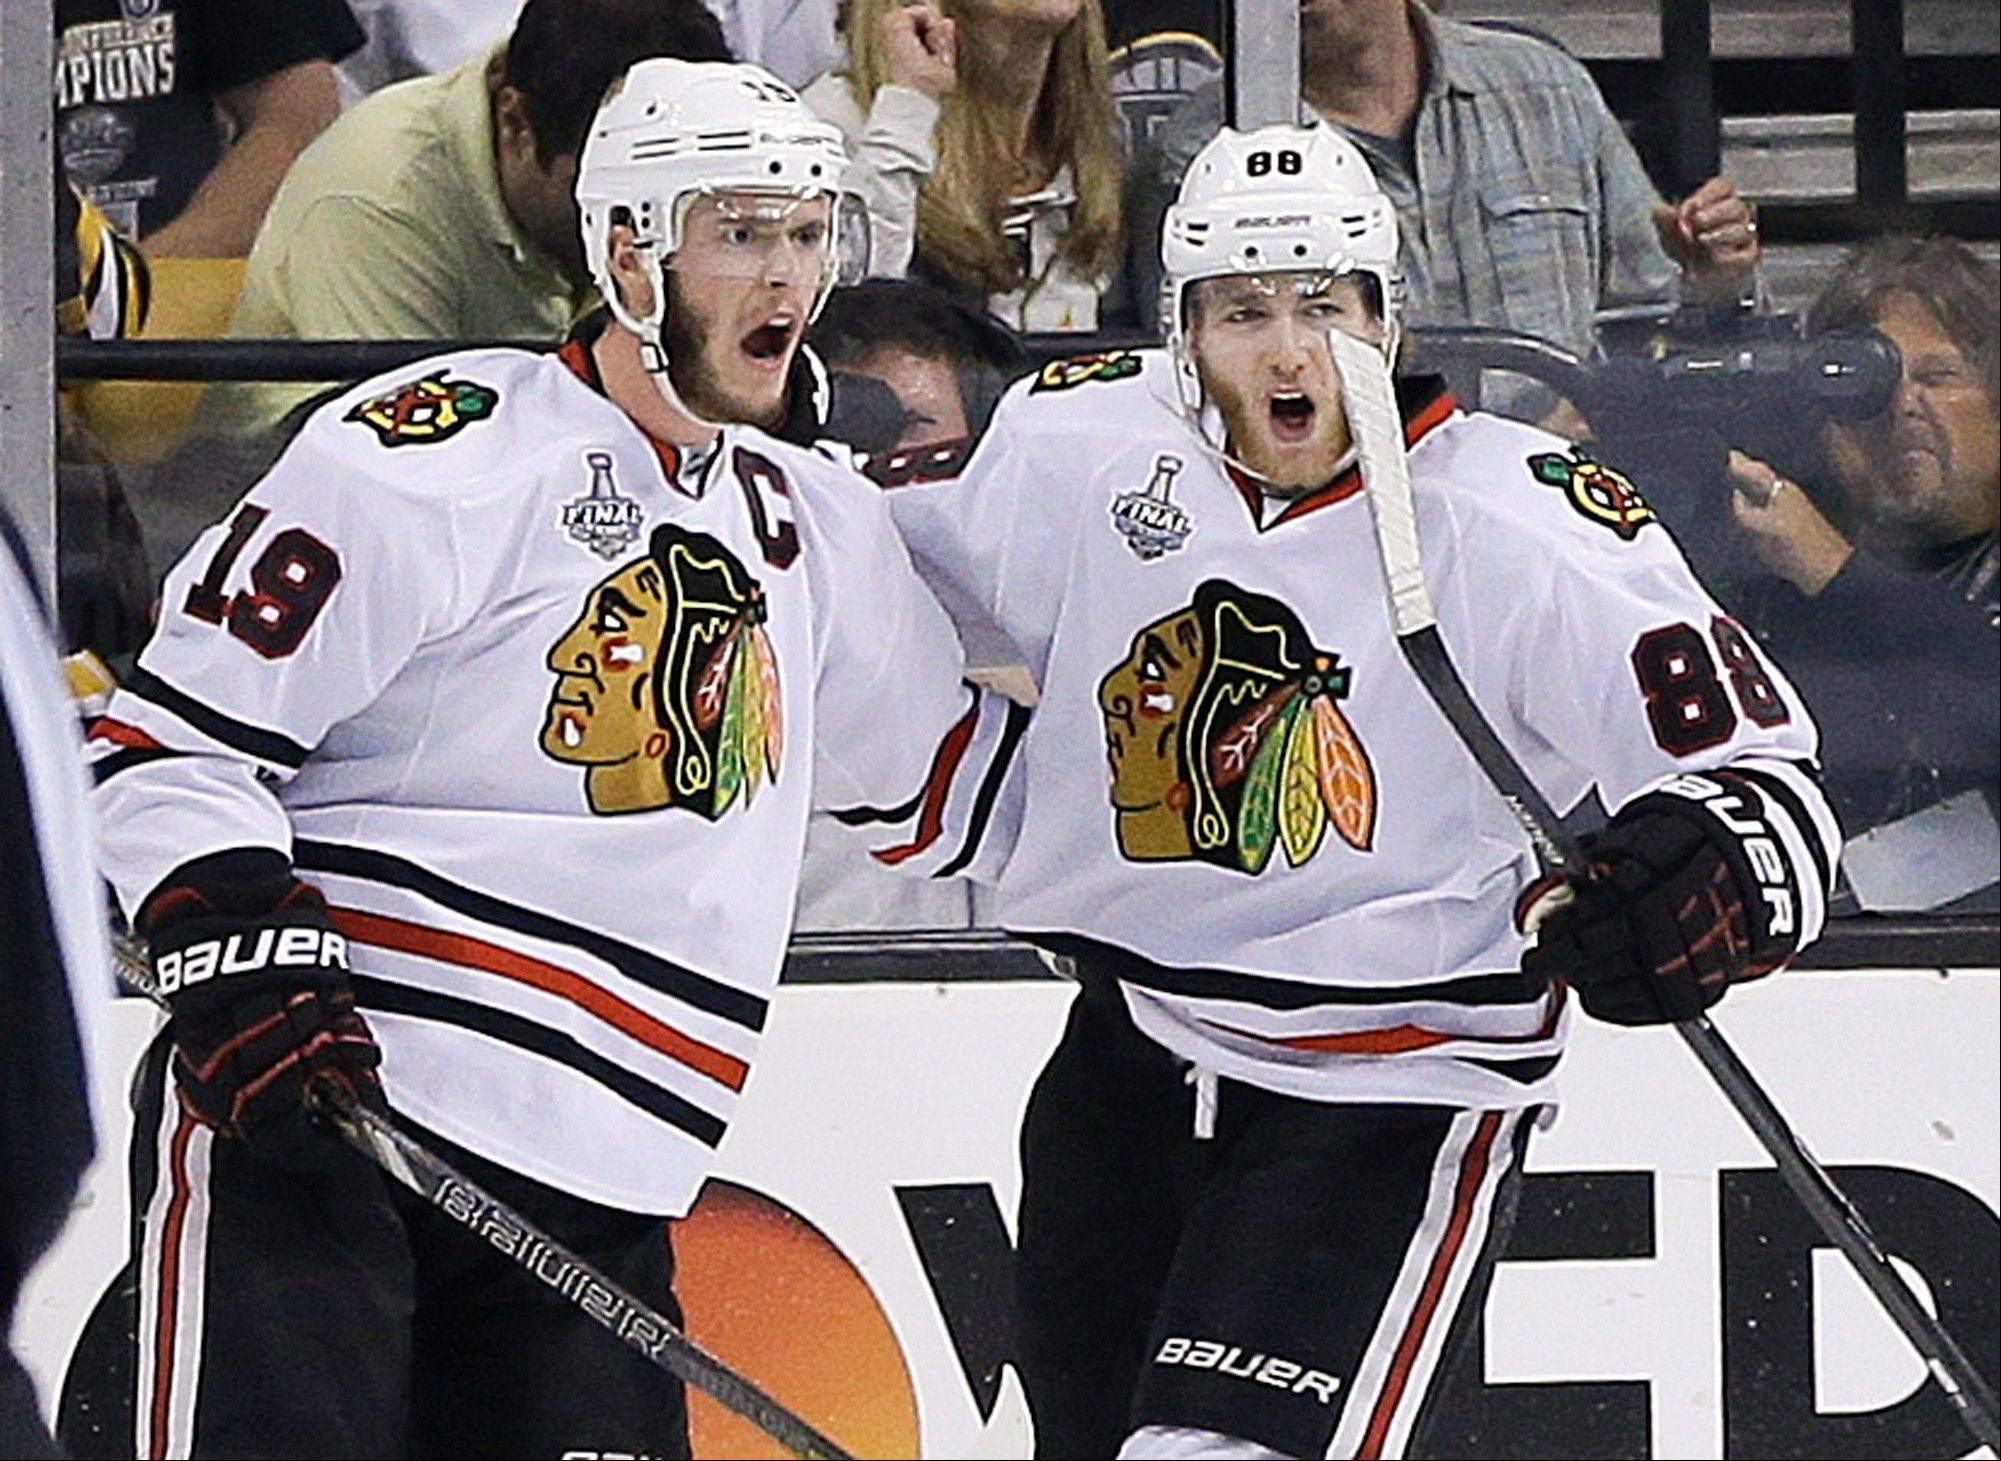 In an interview with Bob Verdi, Blackhawks vice president and general manager Stan Bowman says that center Jonathan Toews (19) and right wing Patrick Kane (88) will be with the Blackhawks forever.